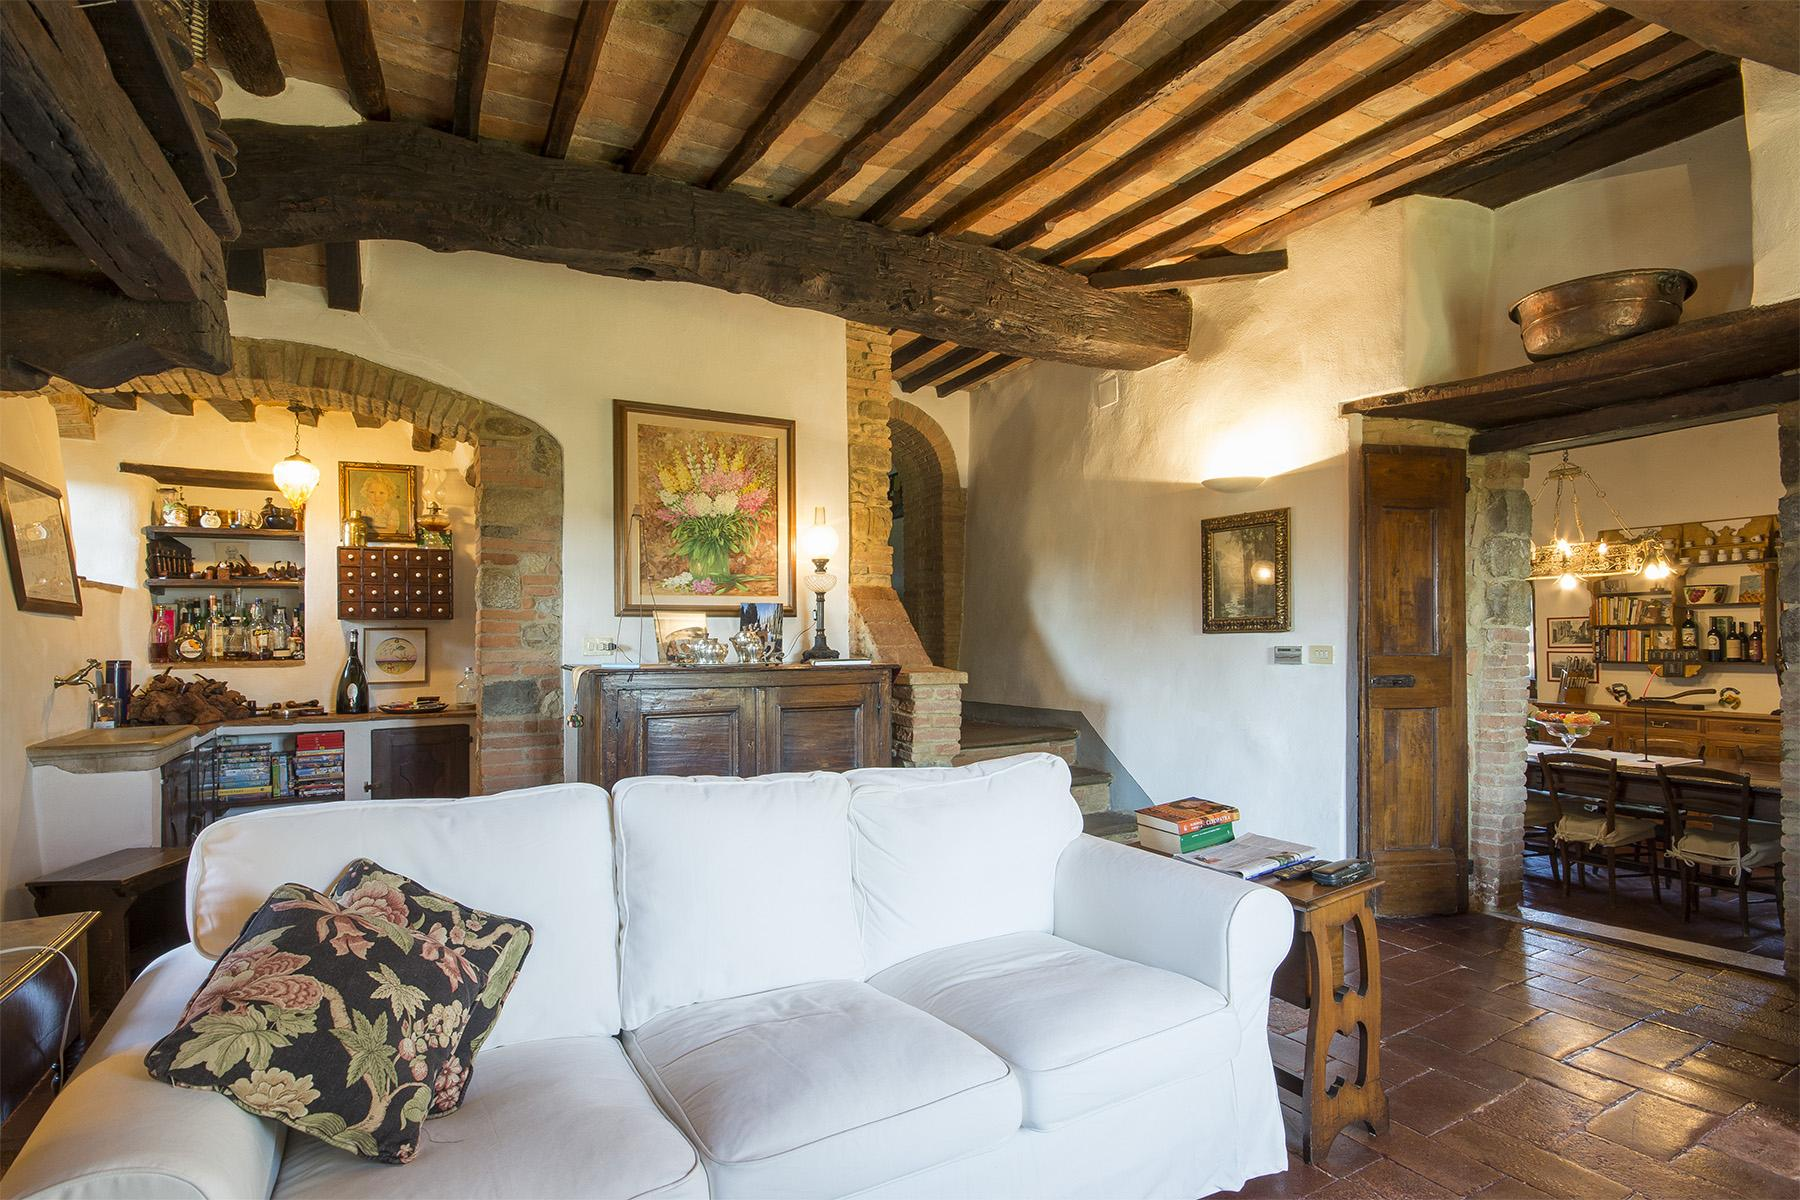 Beautiful countryhouse in the Chianti area - 15